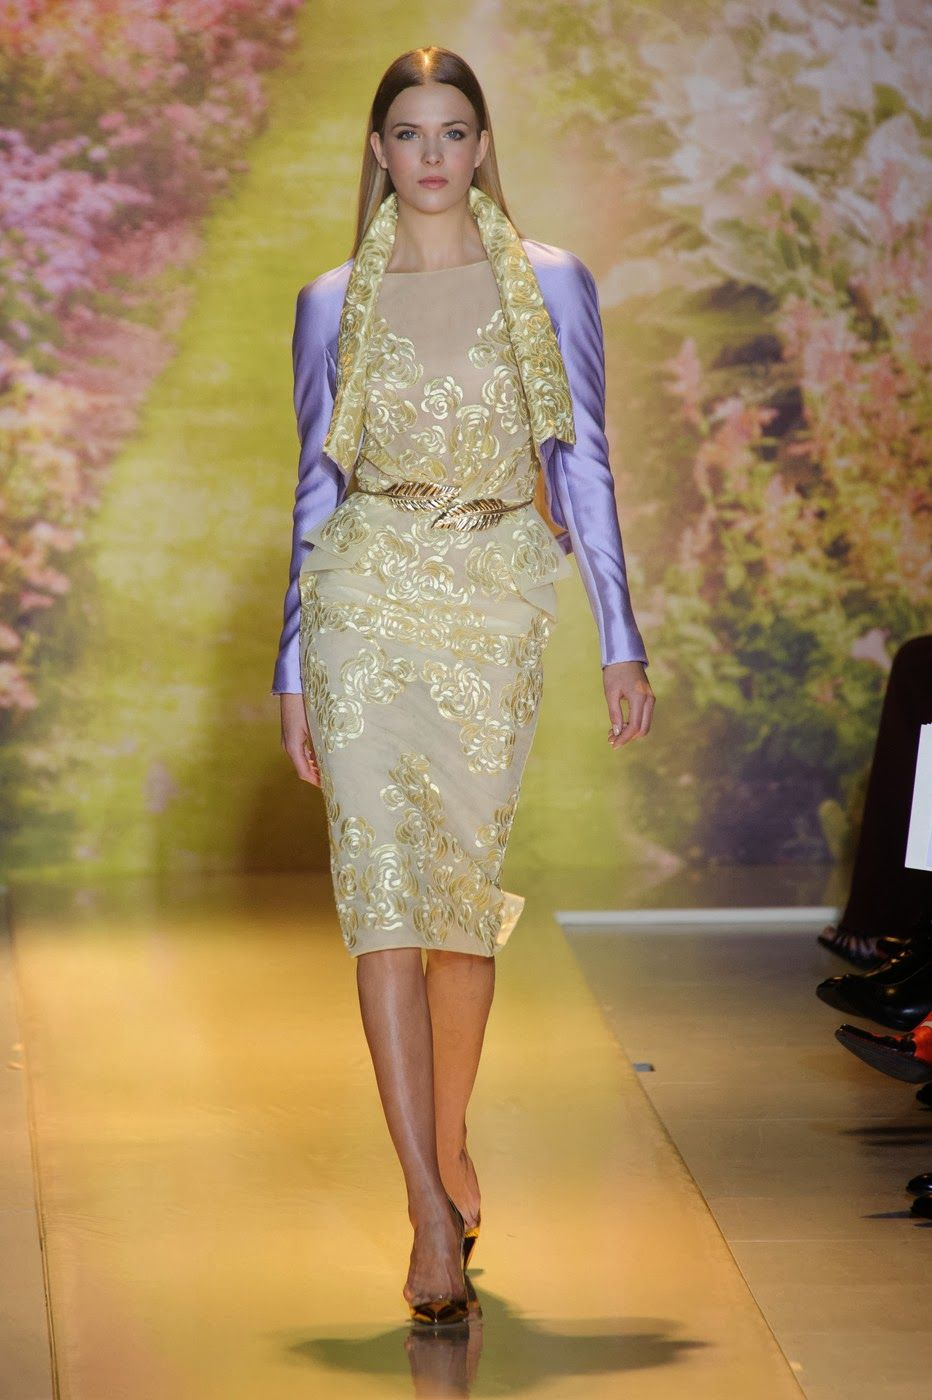 Fashion Show: Zuhair Murad Spring/Summer 2014 Haute Couture | 3 часть